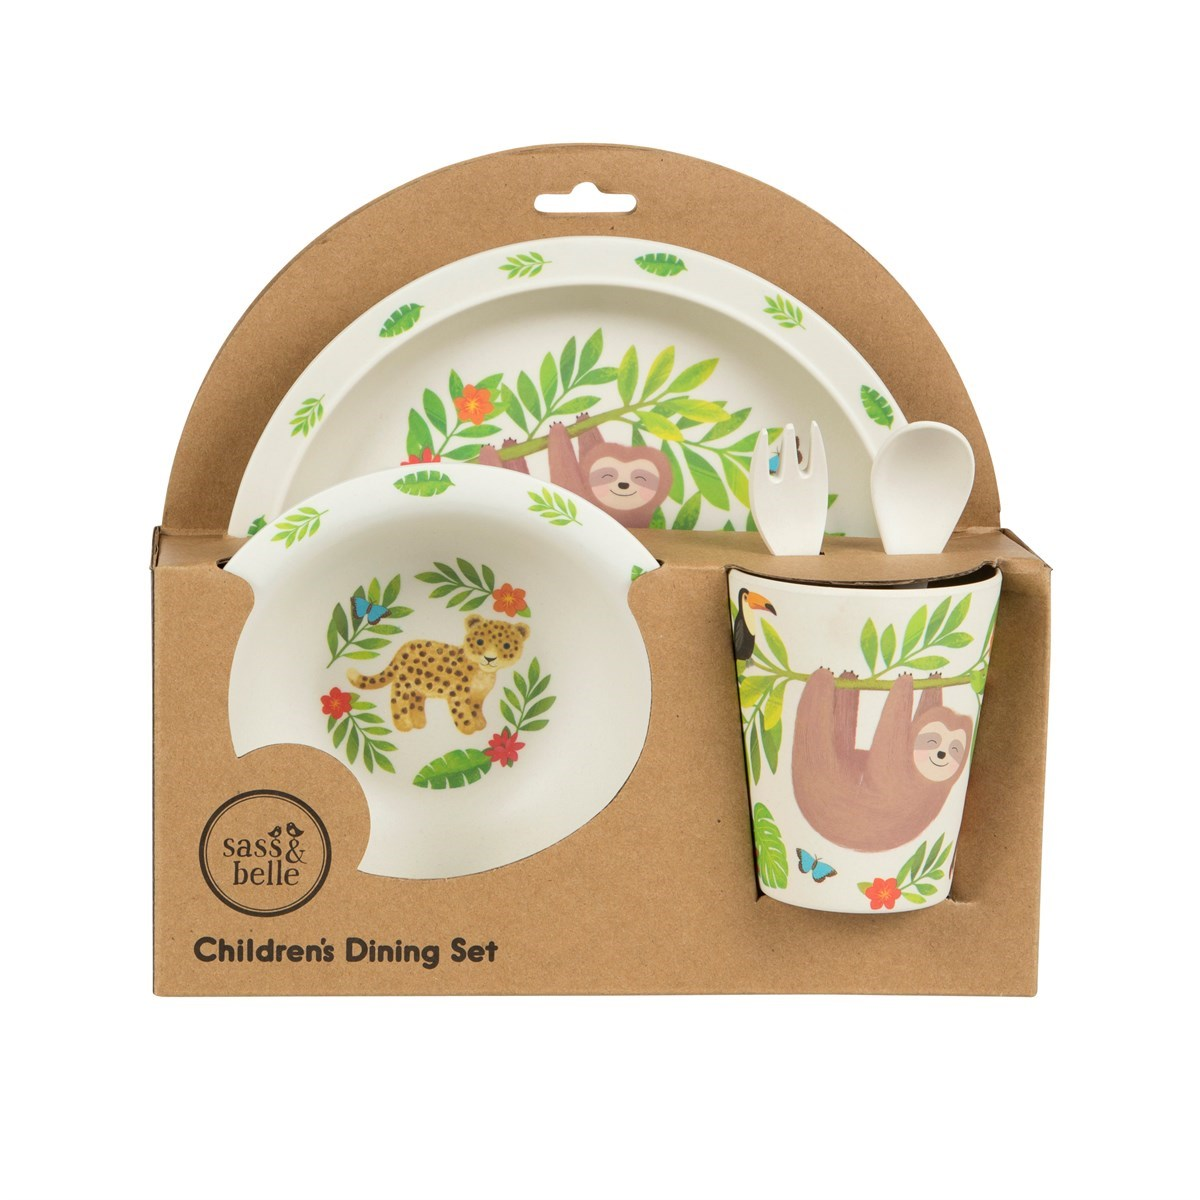 Sloth and Friends Bamboo Tableware Set Alternative Image 2.  sc 1 st  Sass and Belle & Sloth and Friends Bamboo Tableware Set